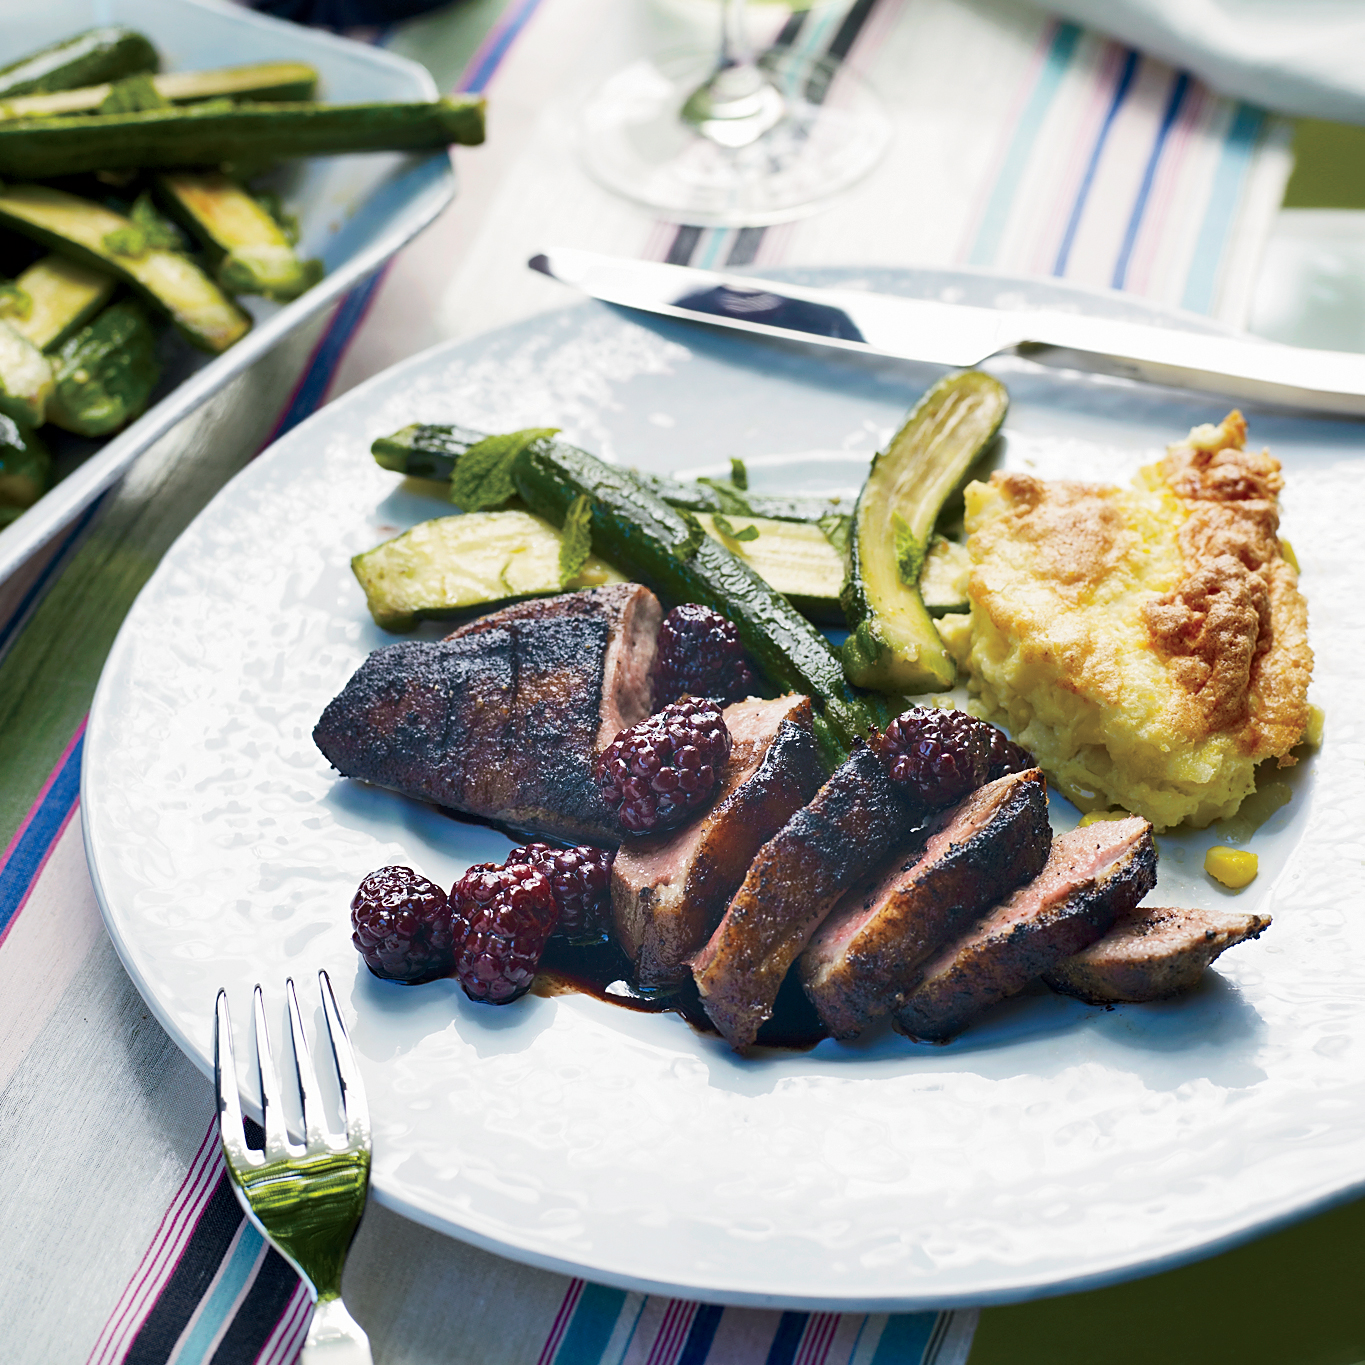 200909-r-spiced-duck-breasts.jpg